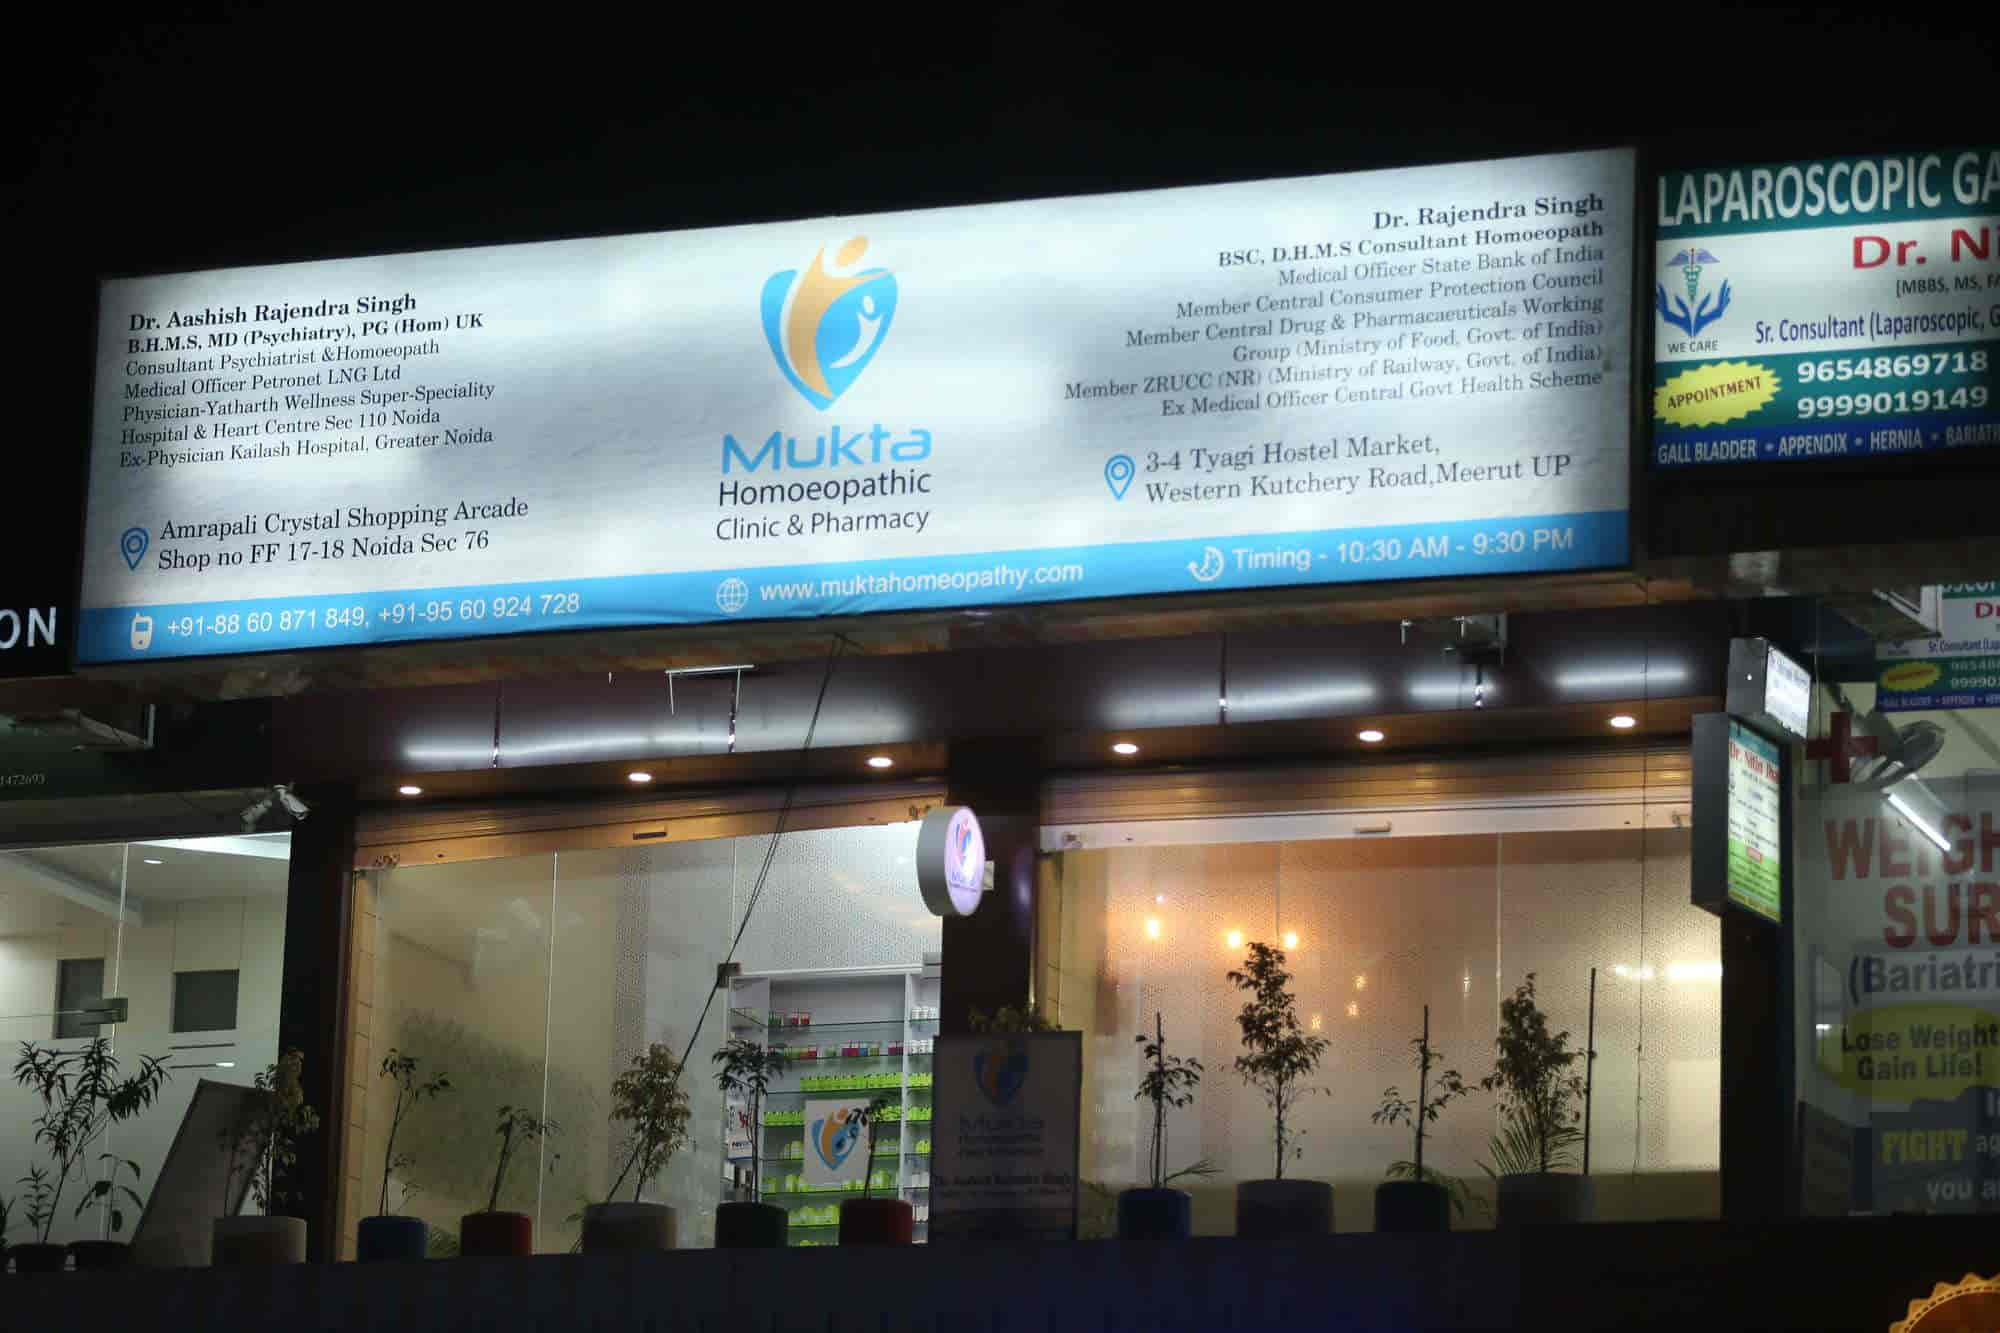 Mukta Homoeopathic Clinic And Pharmacy, Noida Sector 76